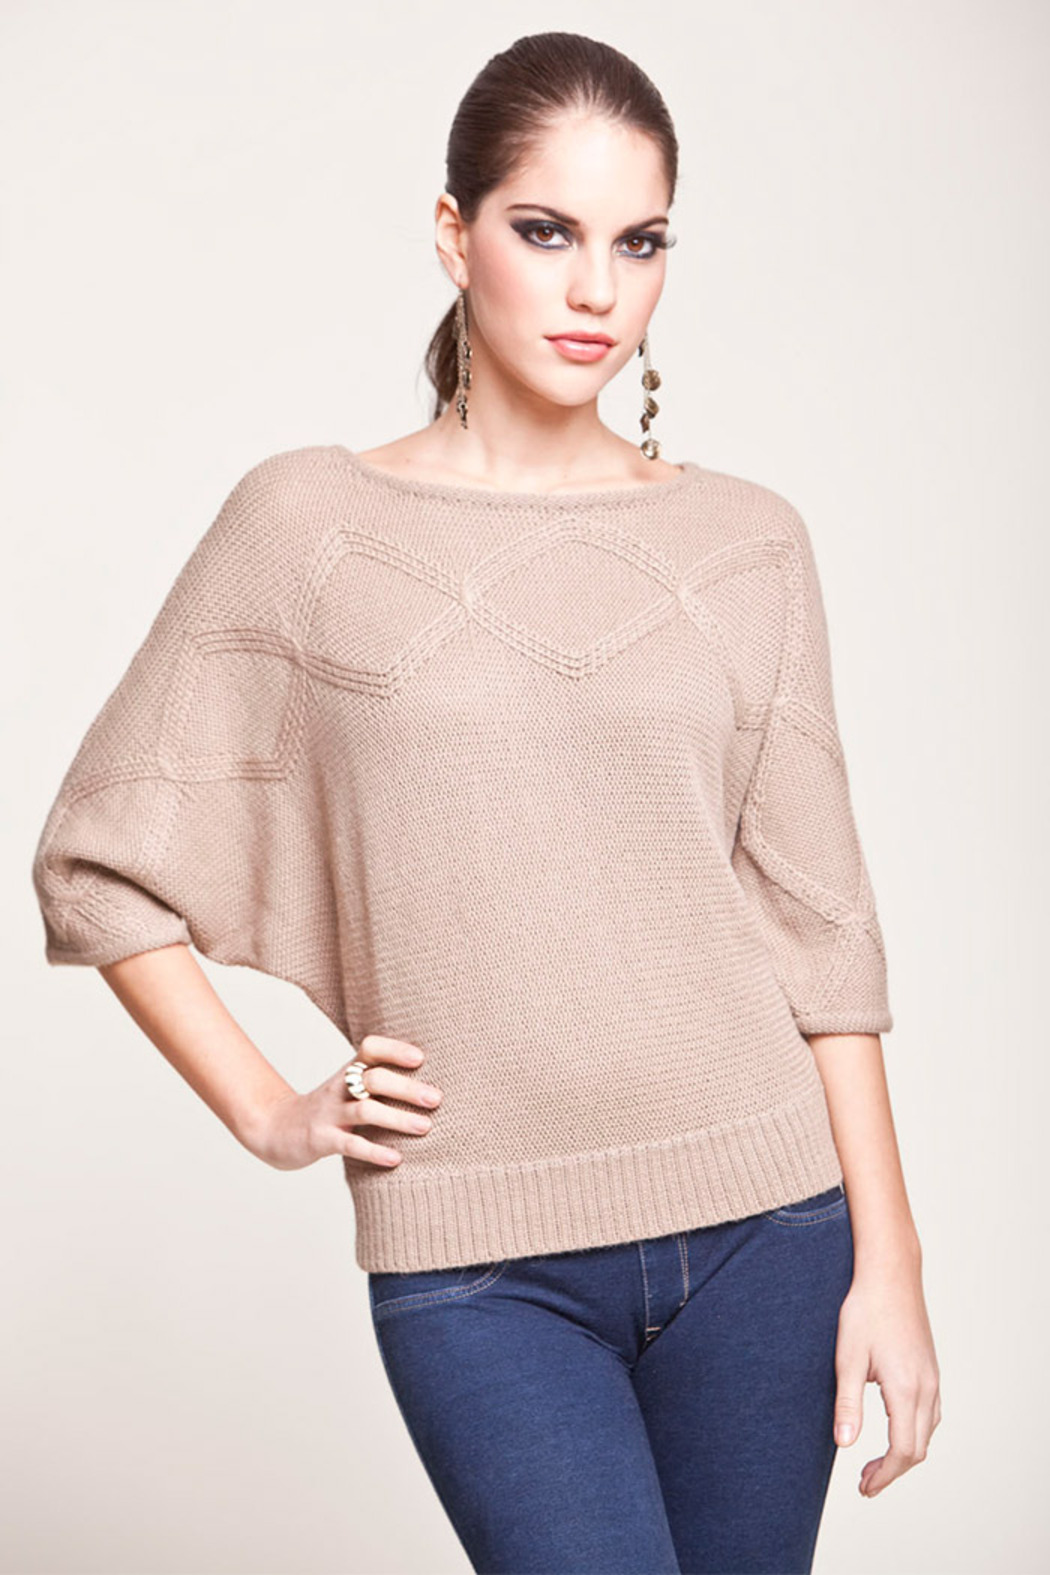 Find kimono sleeve sweater at ShopStyle. Shop the latest collection of kimono sleeve sweater from the most popular stores - all in one place.